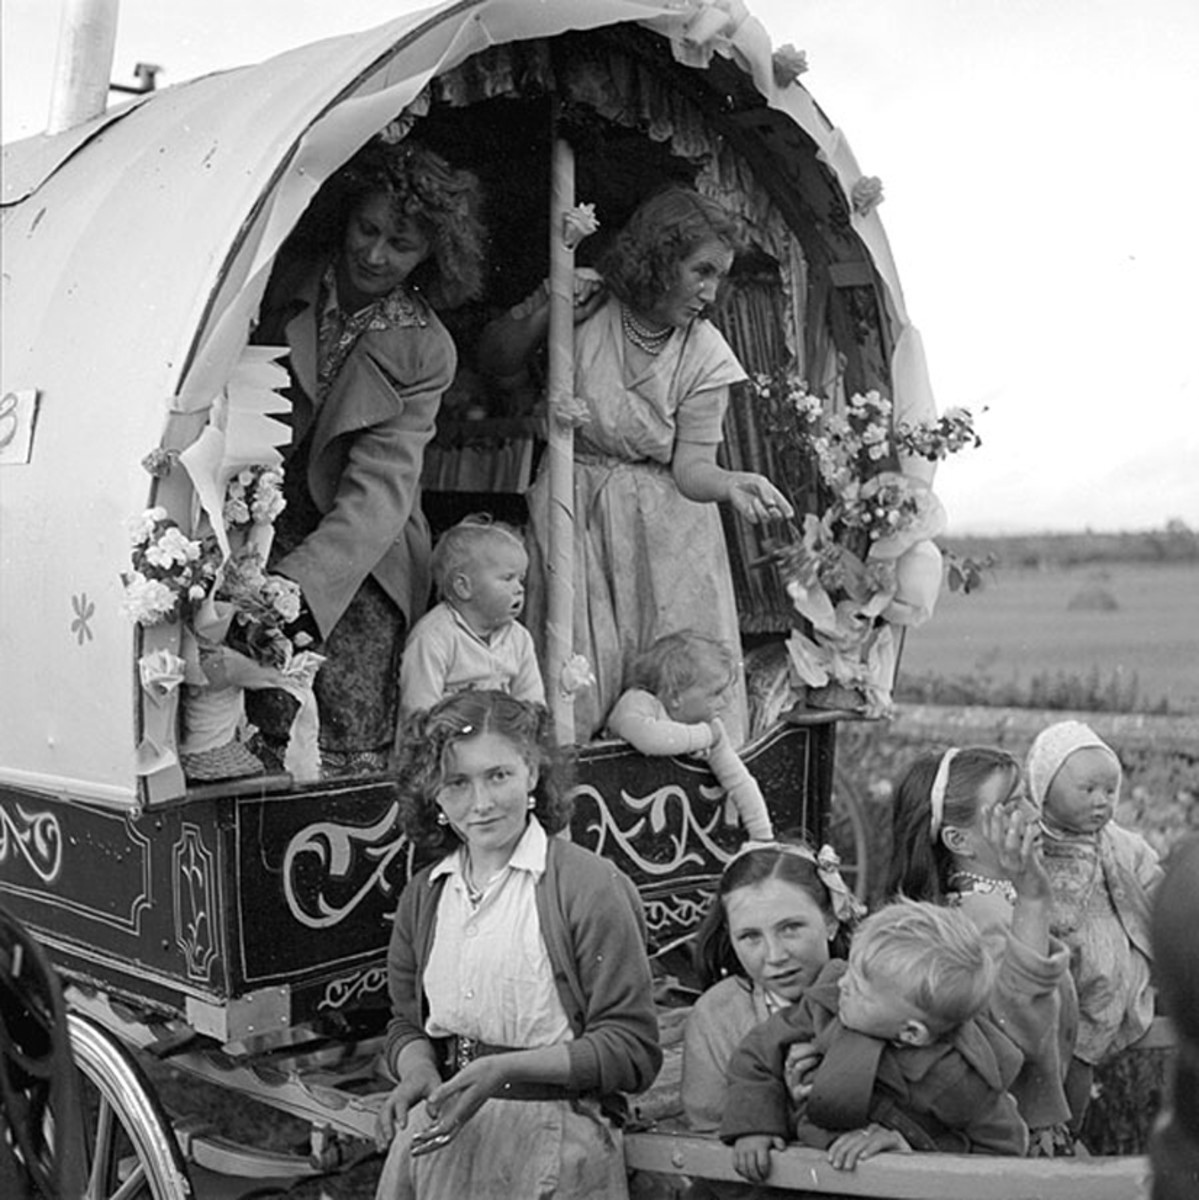 An Irish American group of travelers in the Southern United States in the mid-20th century